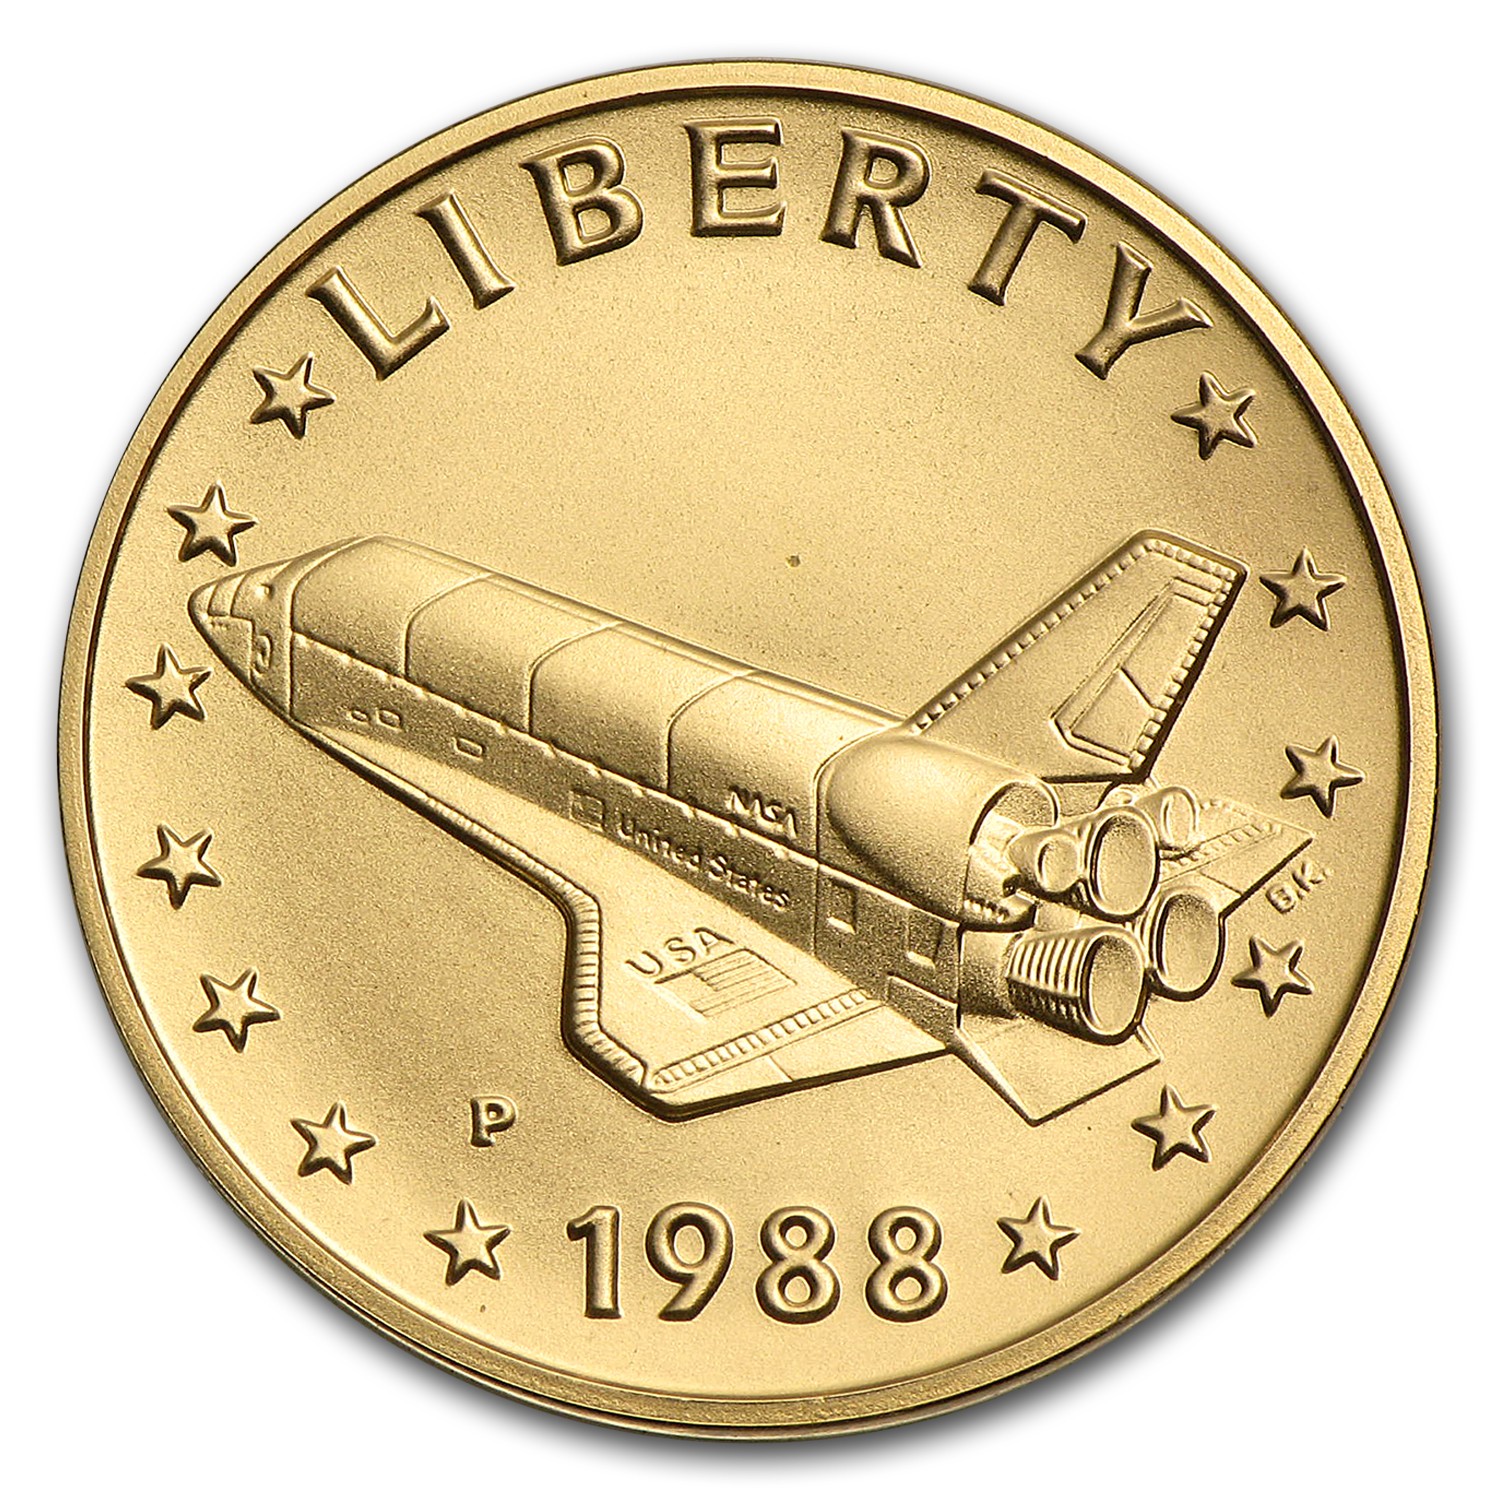 .2419 oz Gold Round - America in Space Young Astronaut Medal